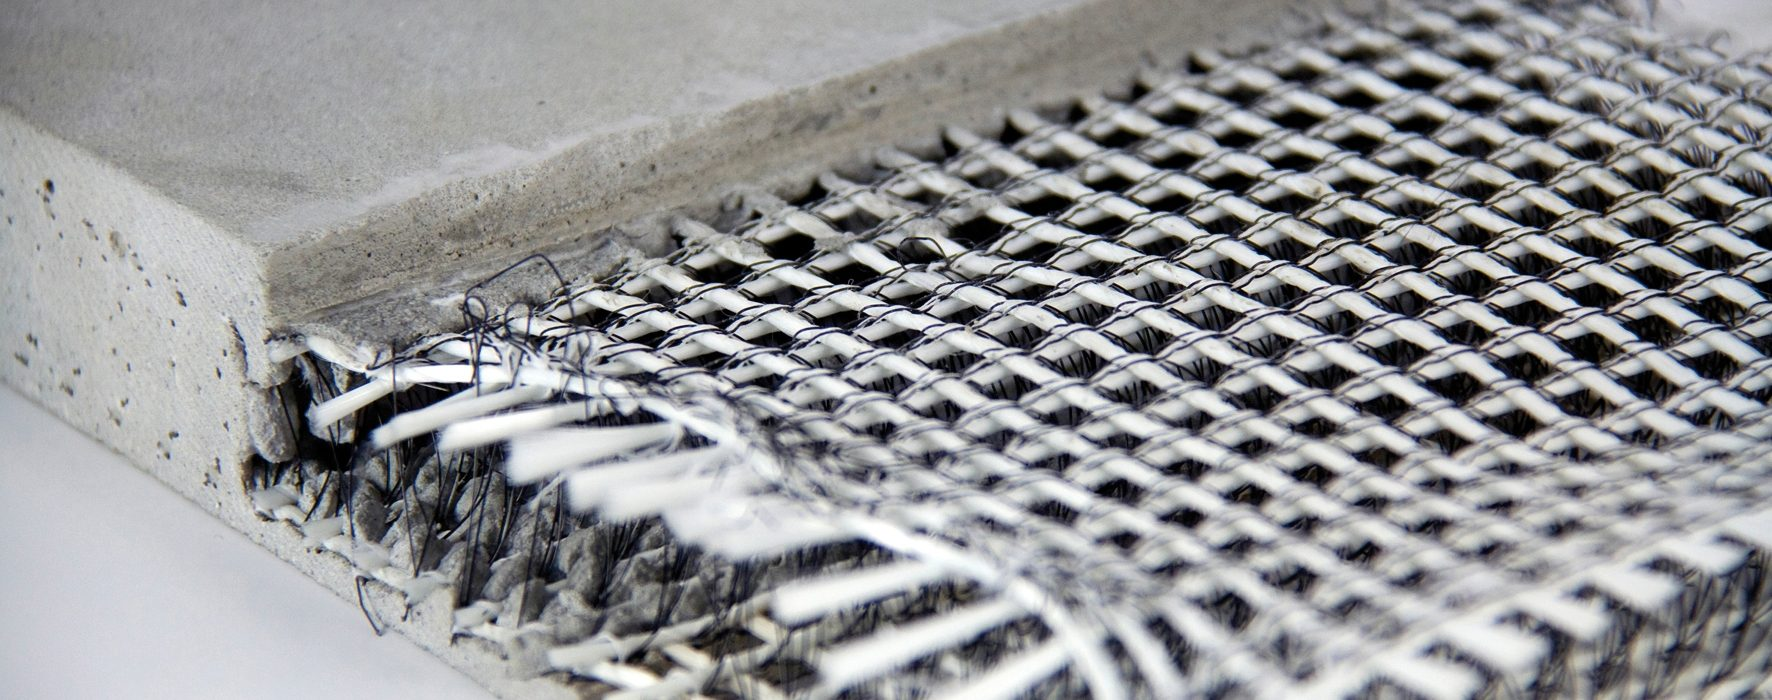 Why Use Fiber-Reinforced Concrete?